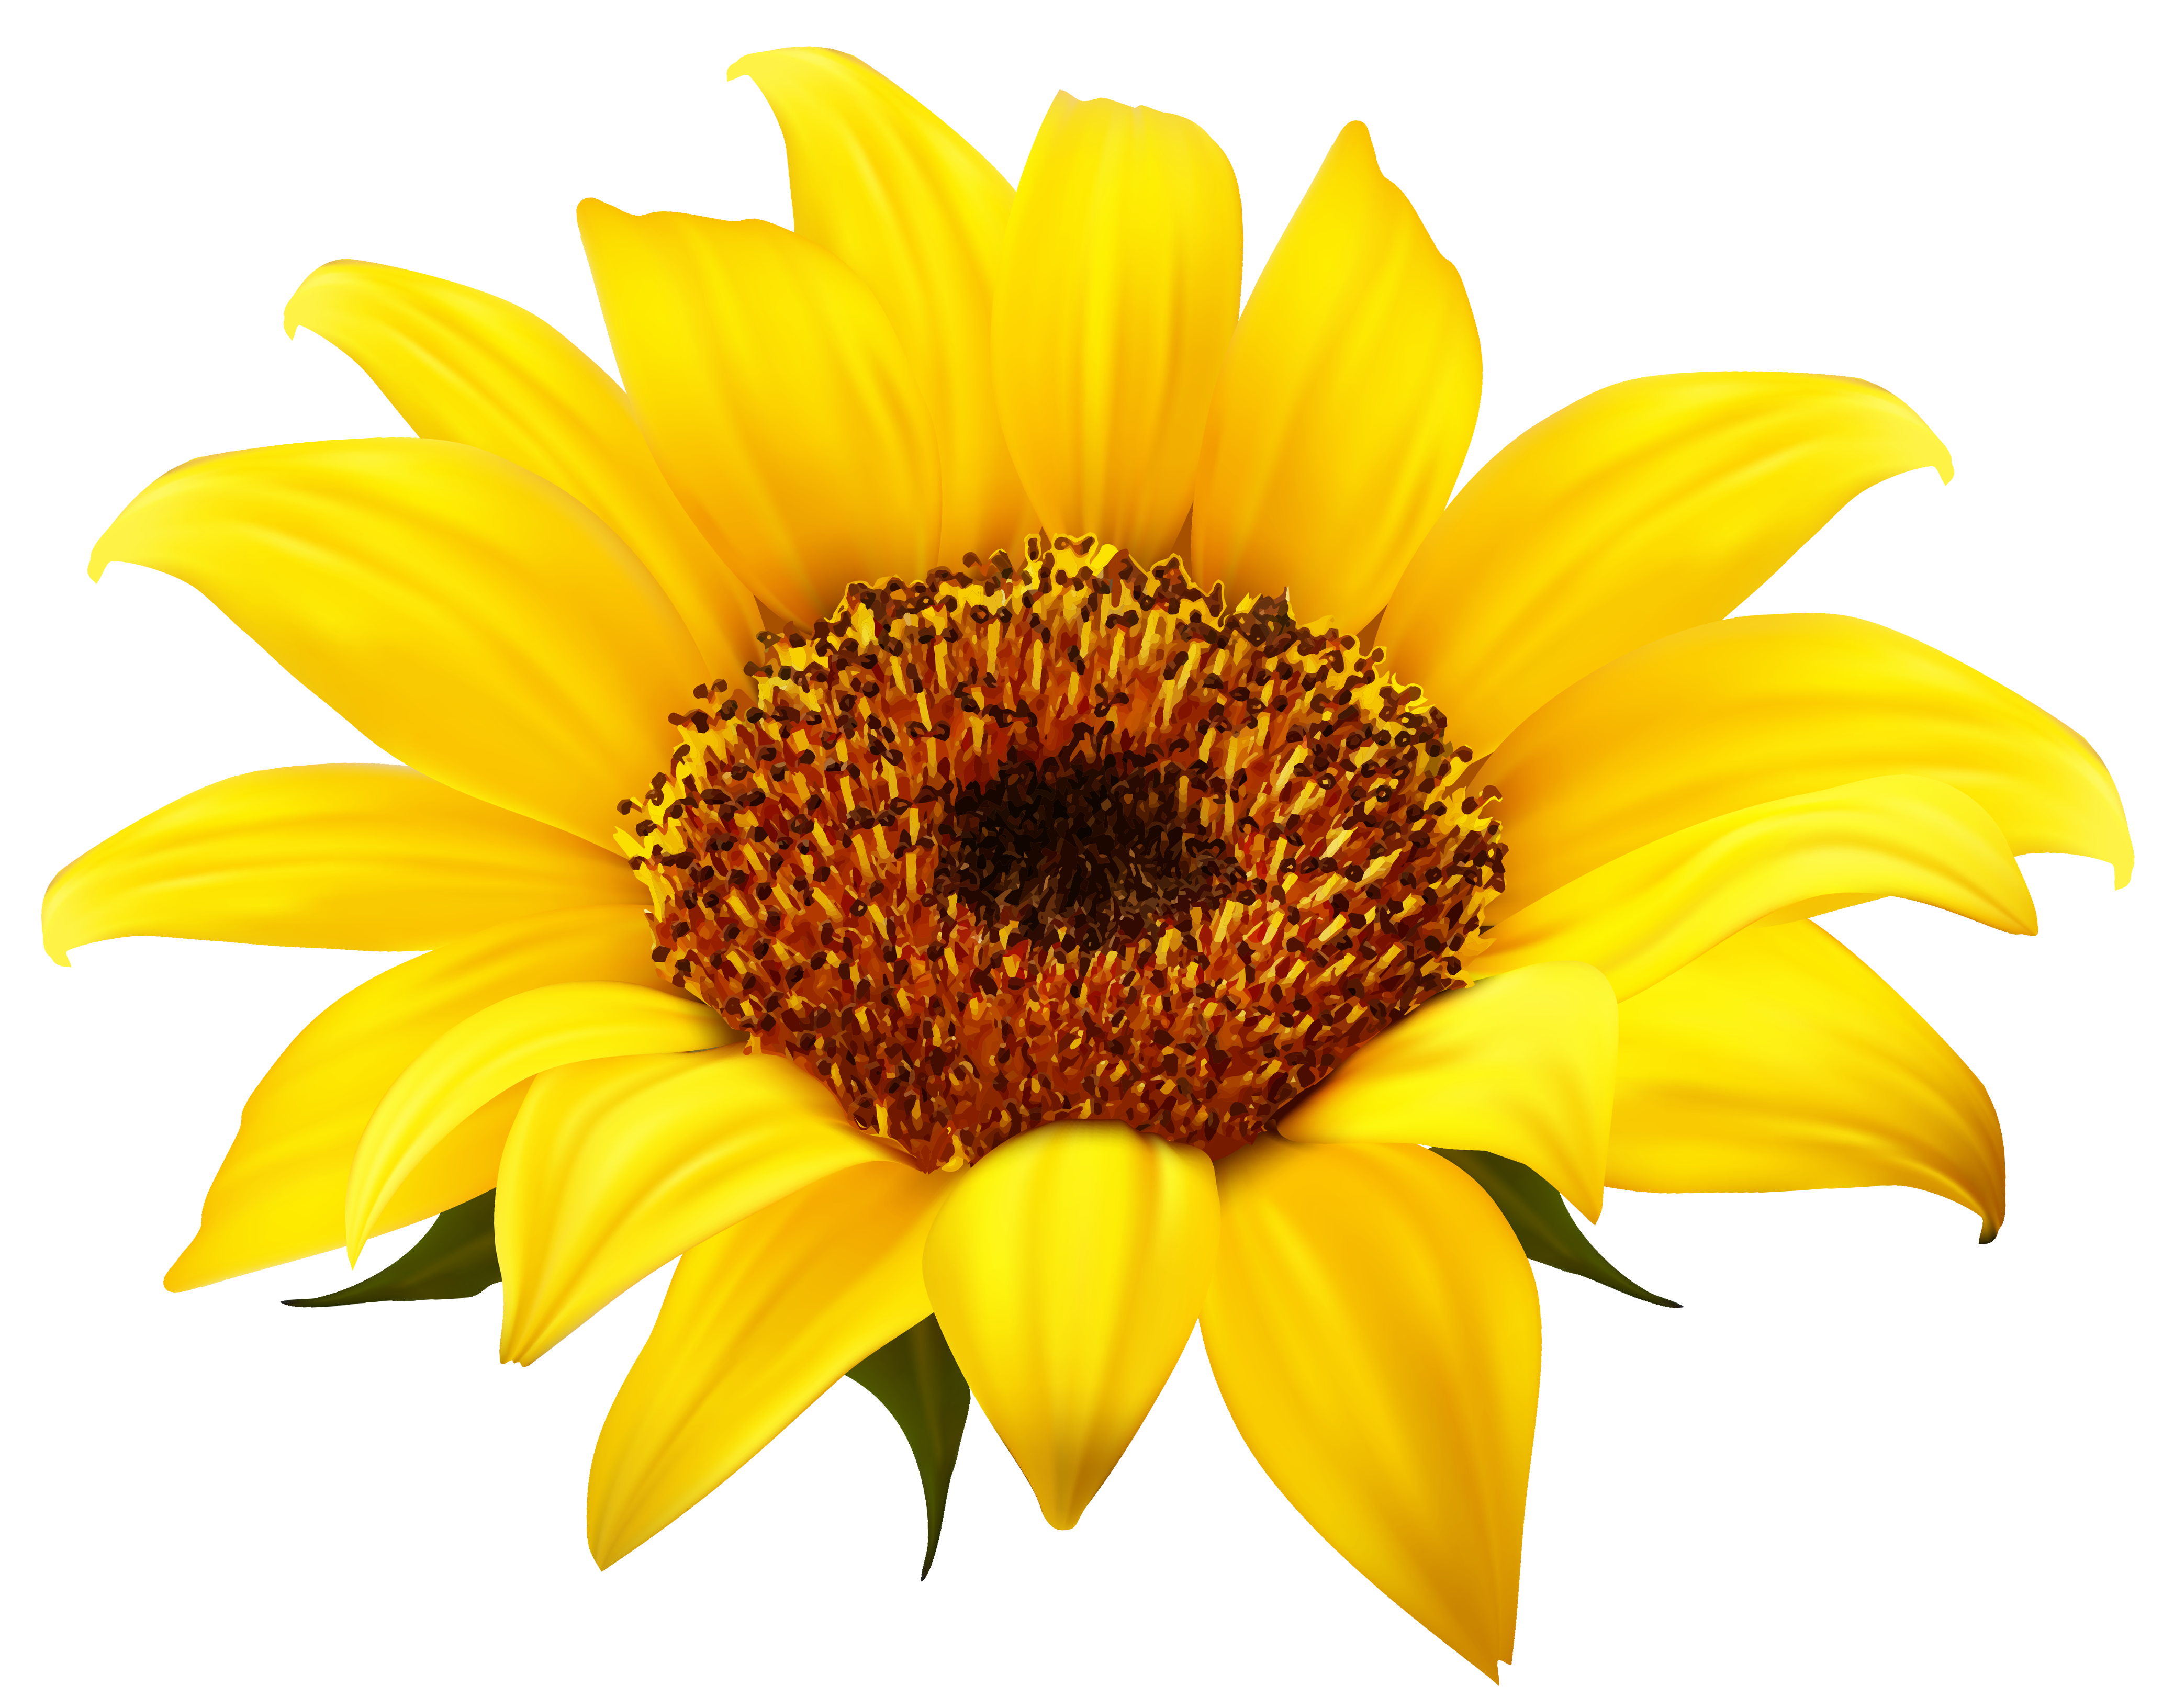 Sunflower clipart png.